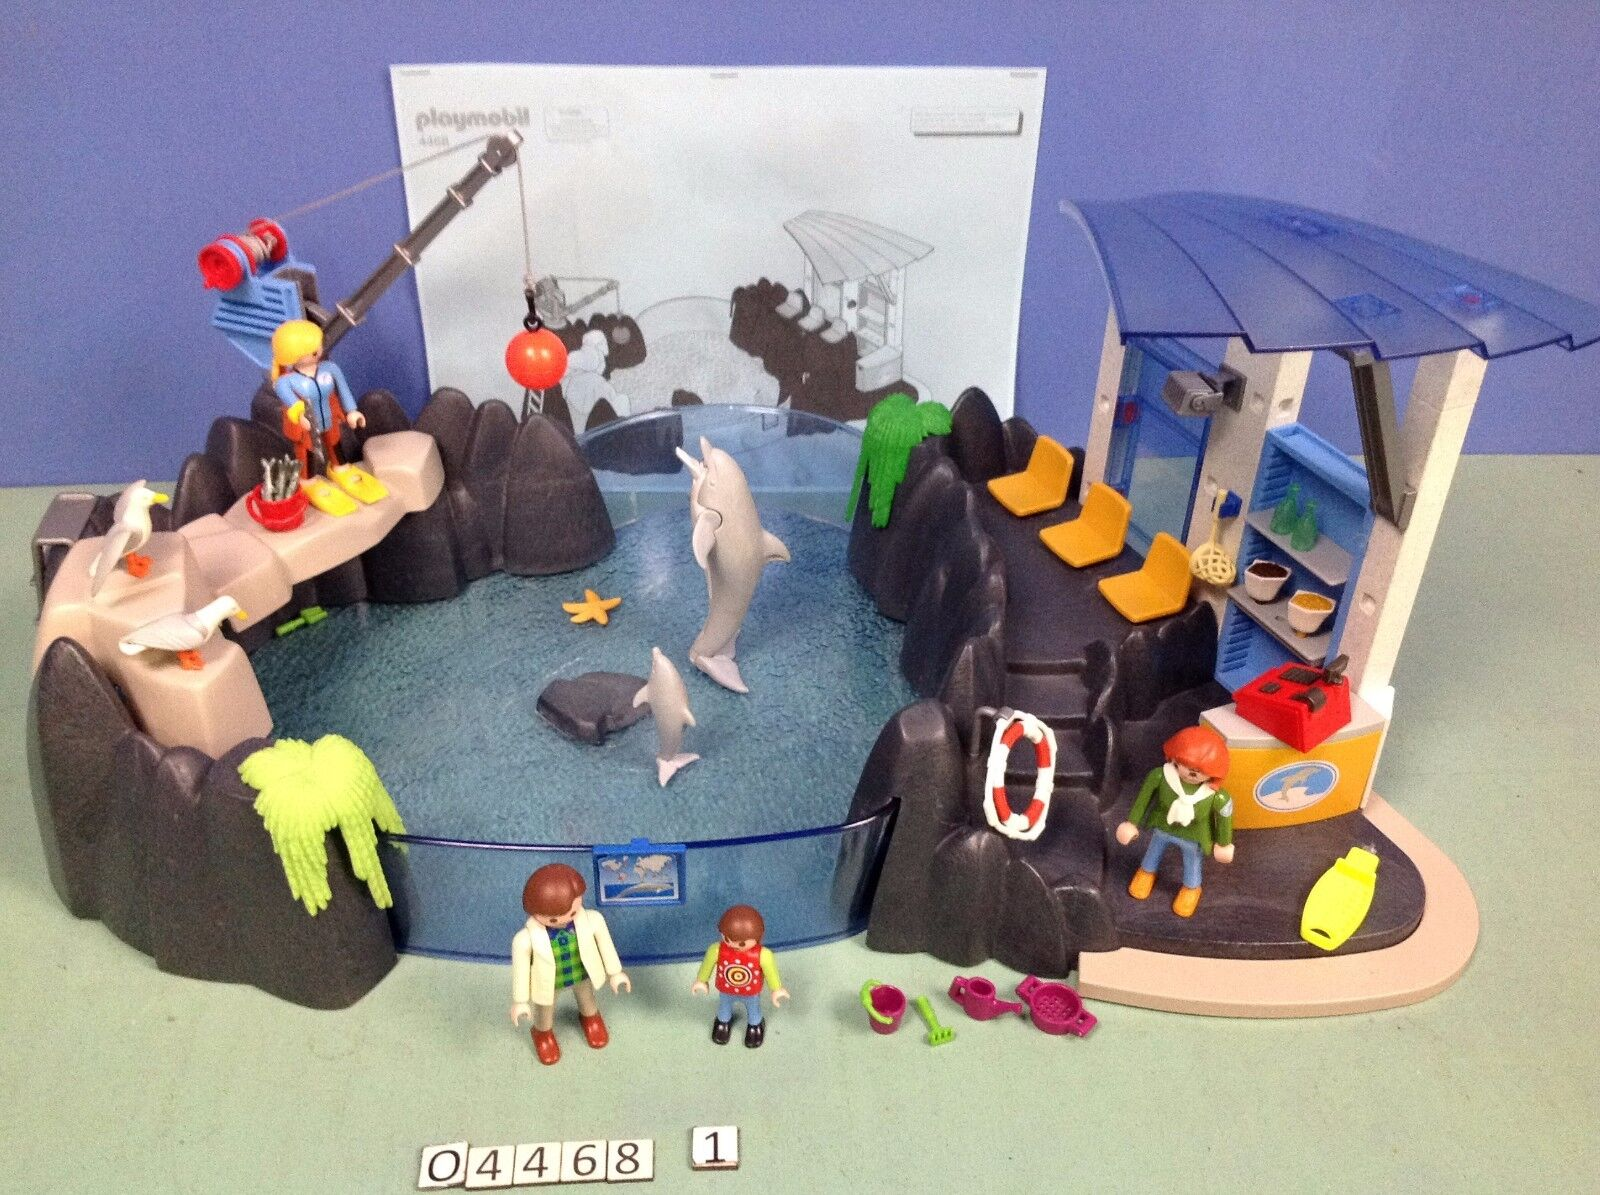 (O4468.1) playmobil Bassin des dauphins ref 4468 complet zoo 3240 4462